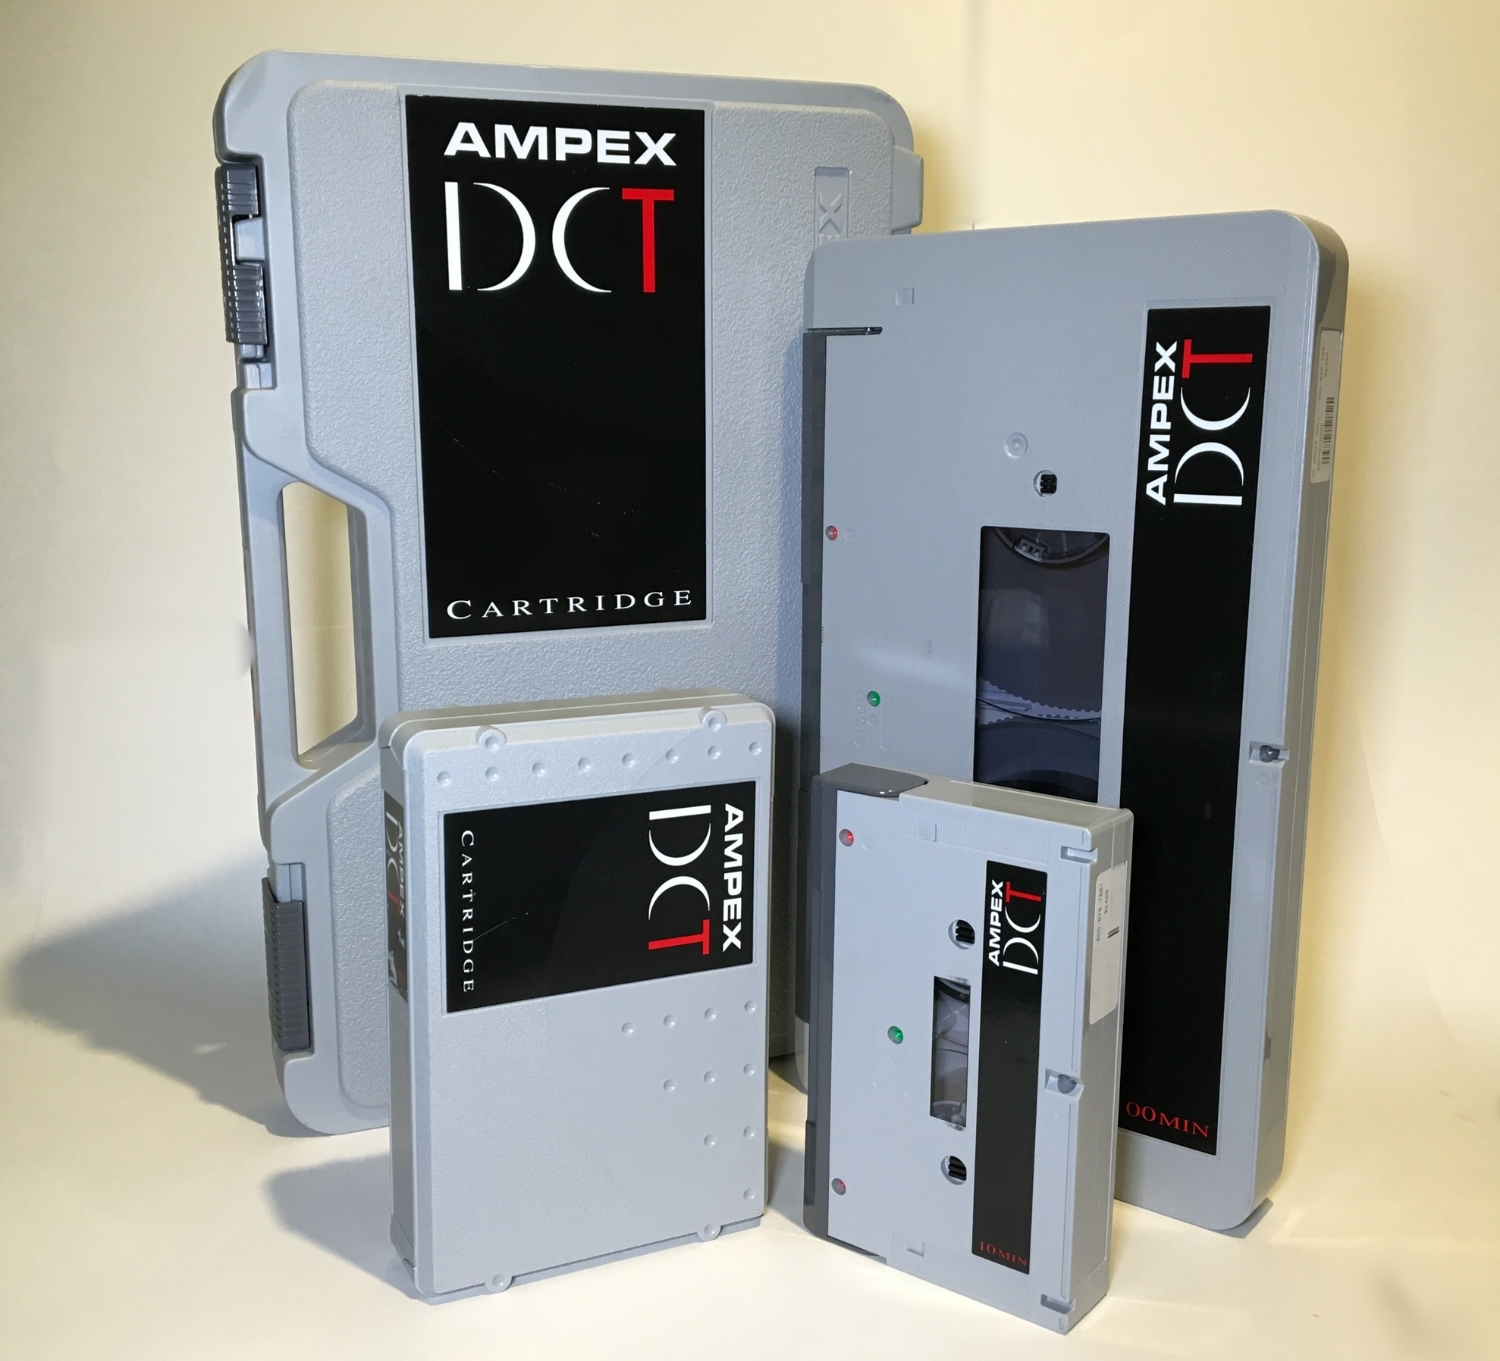 Ampex DCT